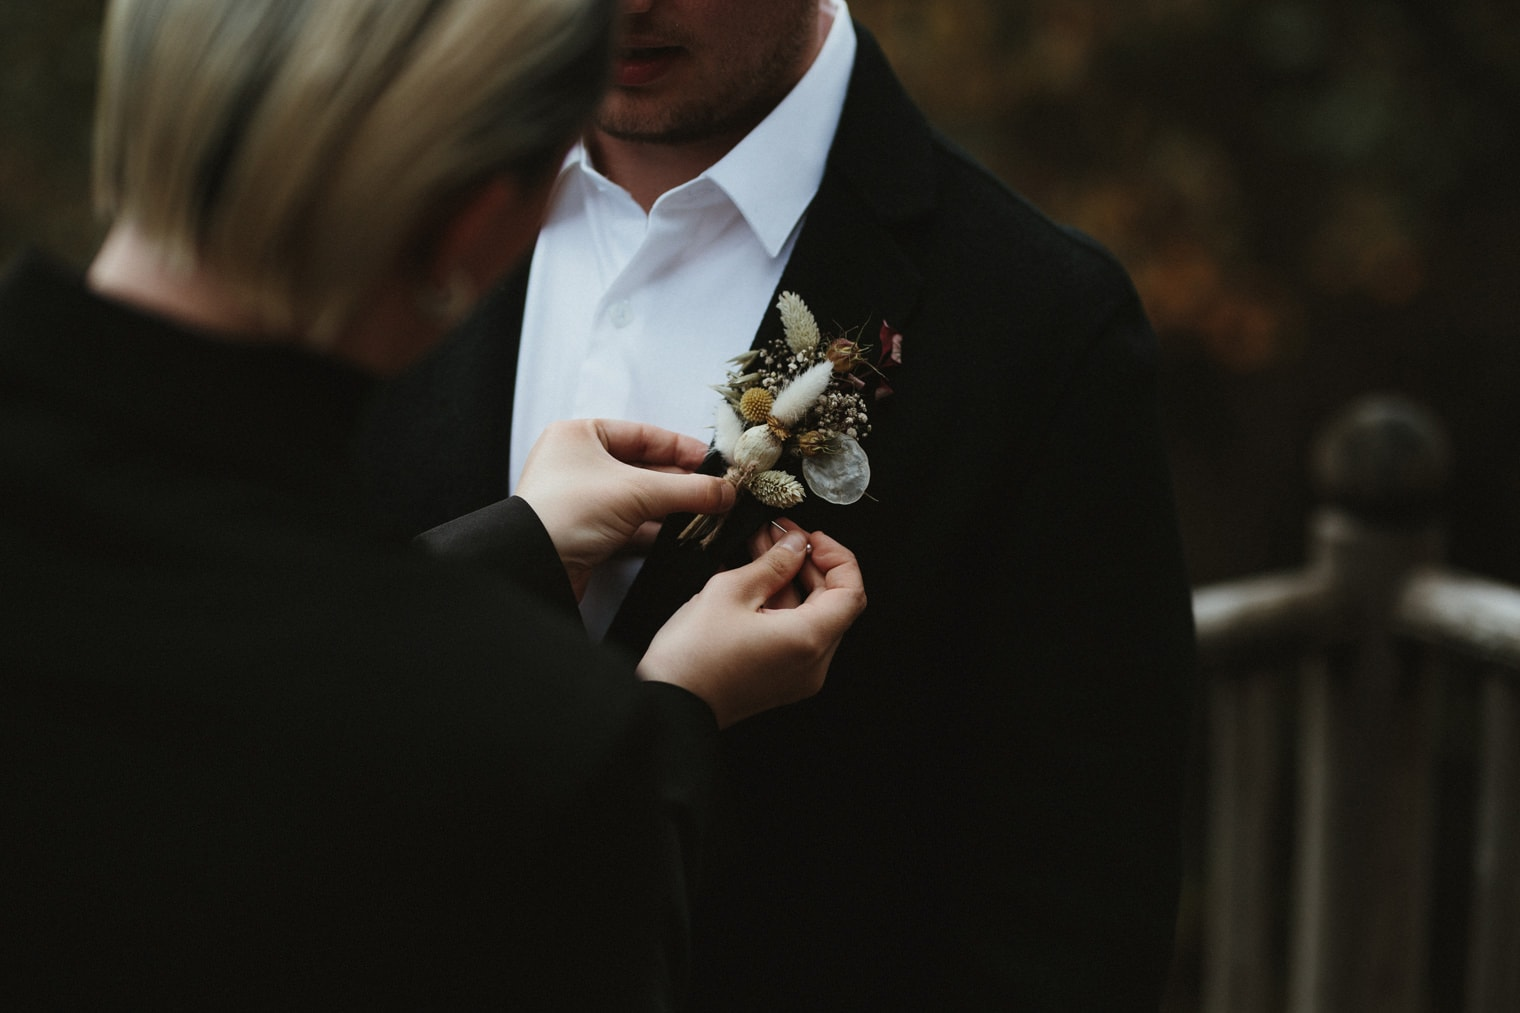 dried flower boutonniere being placed on groom ahead of autumn elopement in the scottish highlands